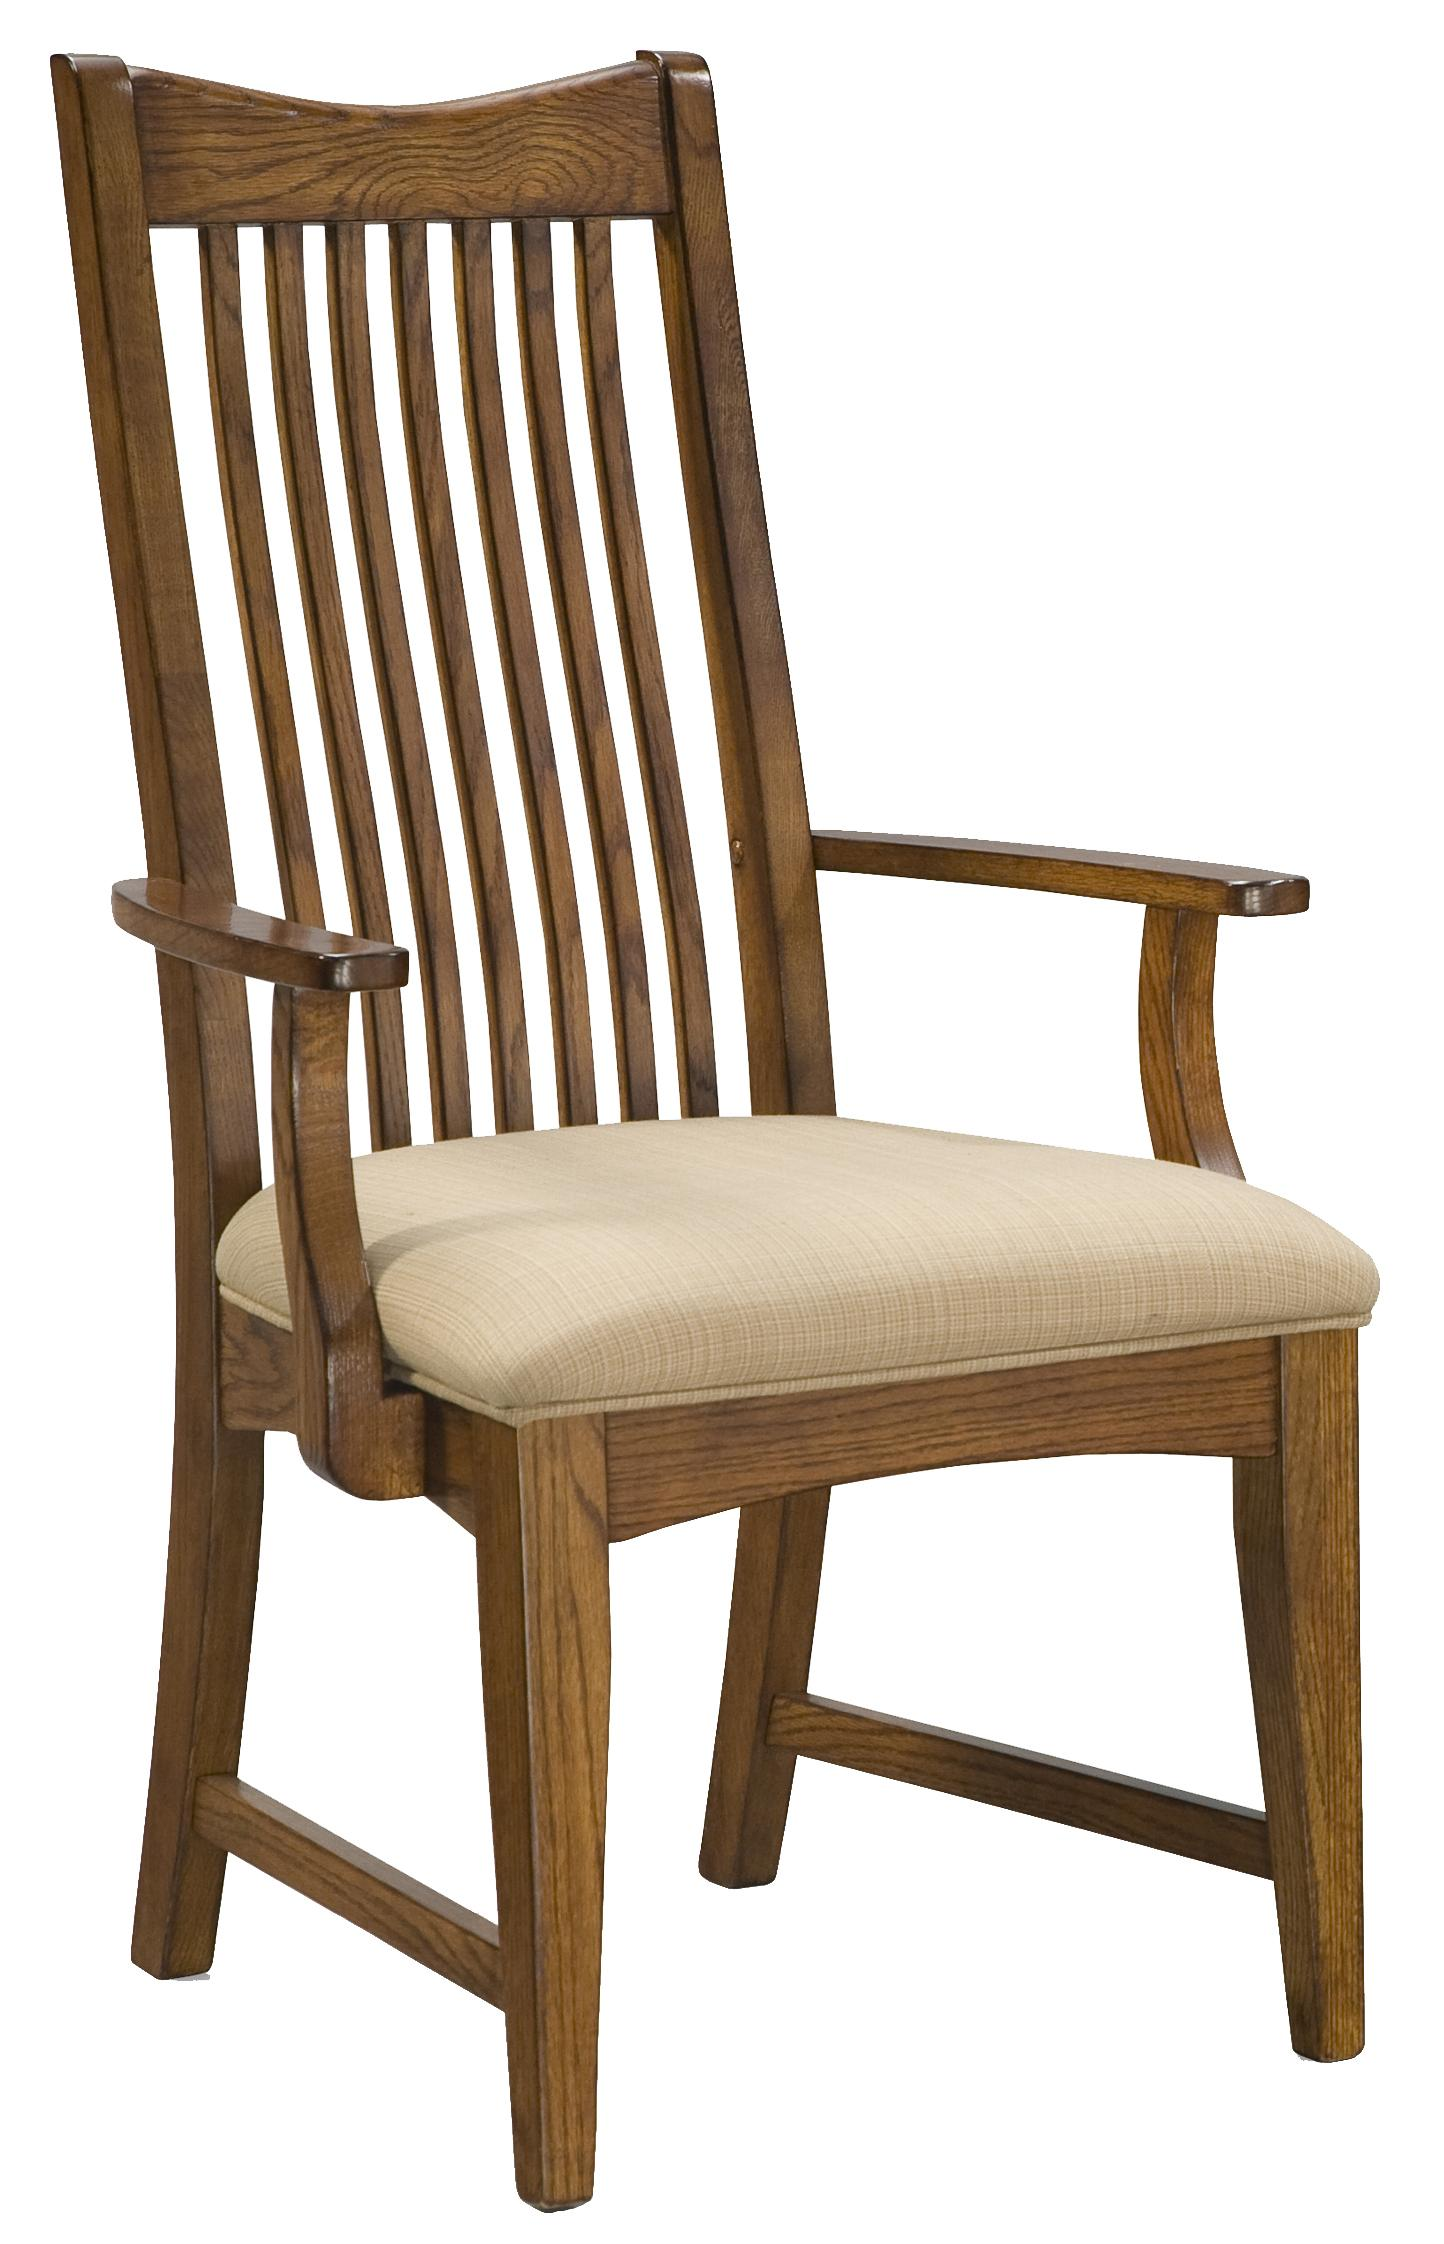 Intercon Pasadena Revival Slat Back Arm Chair With Cushion Seat Wayside Furniture Dining Arm